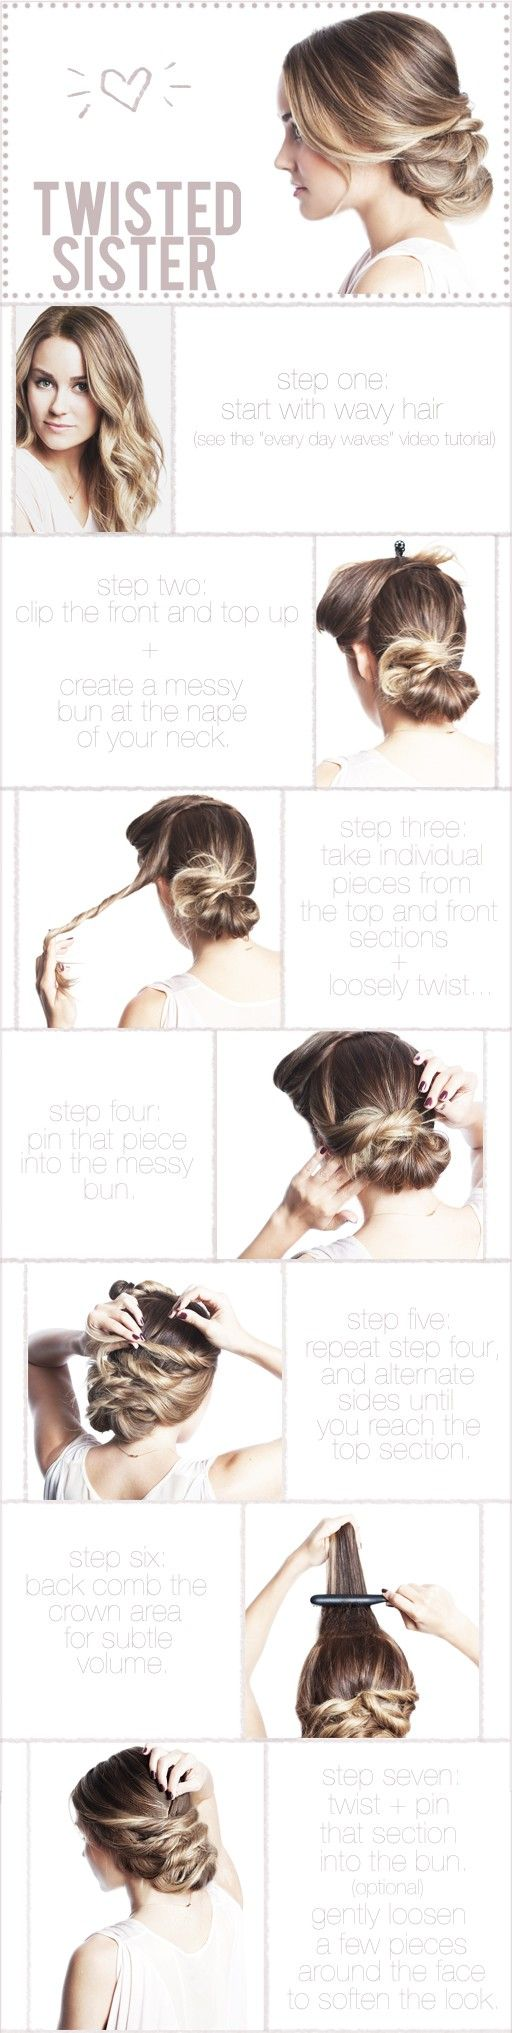 15 Fun Hair Ideas that are quick and easy and outstanding options instead of Mommy Hair!